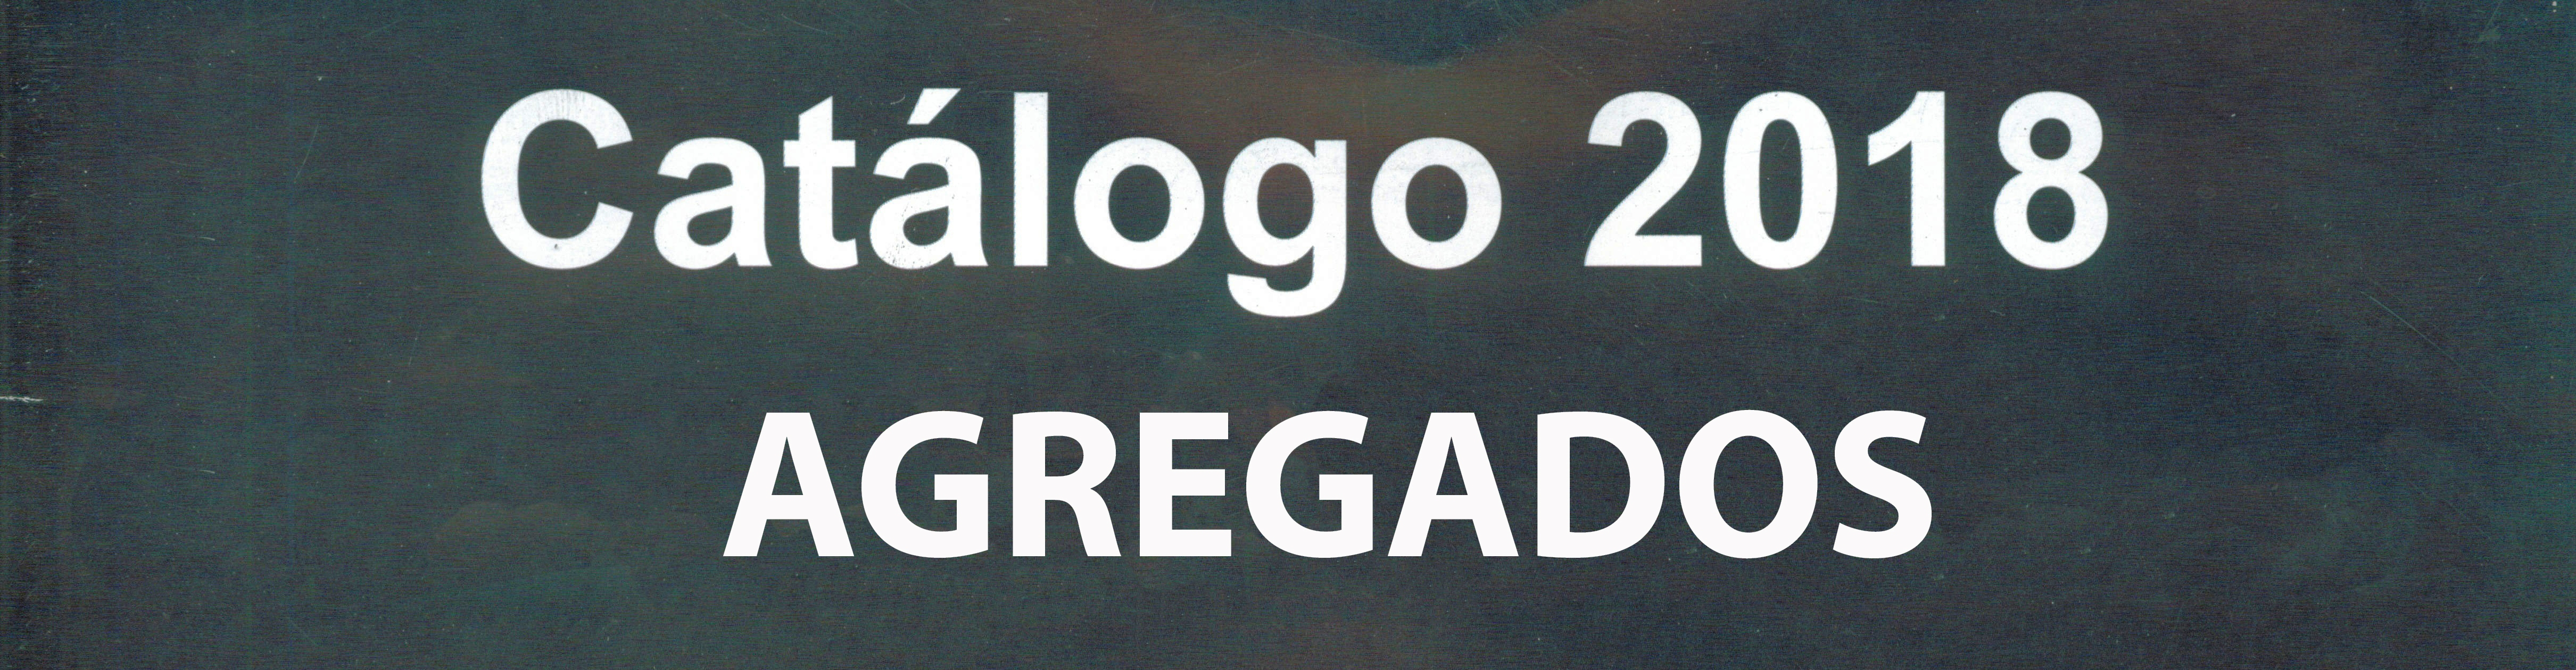 AGREGADOS CATALOGO 2018 (ABRIL 2019)